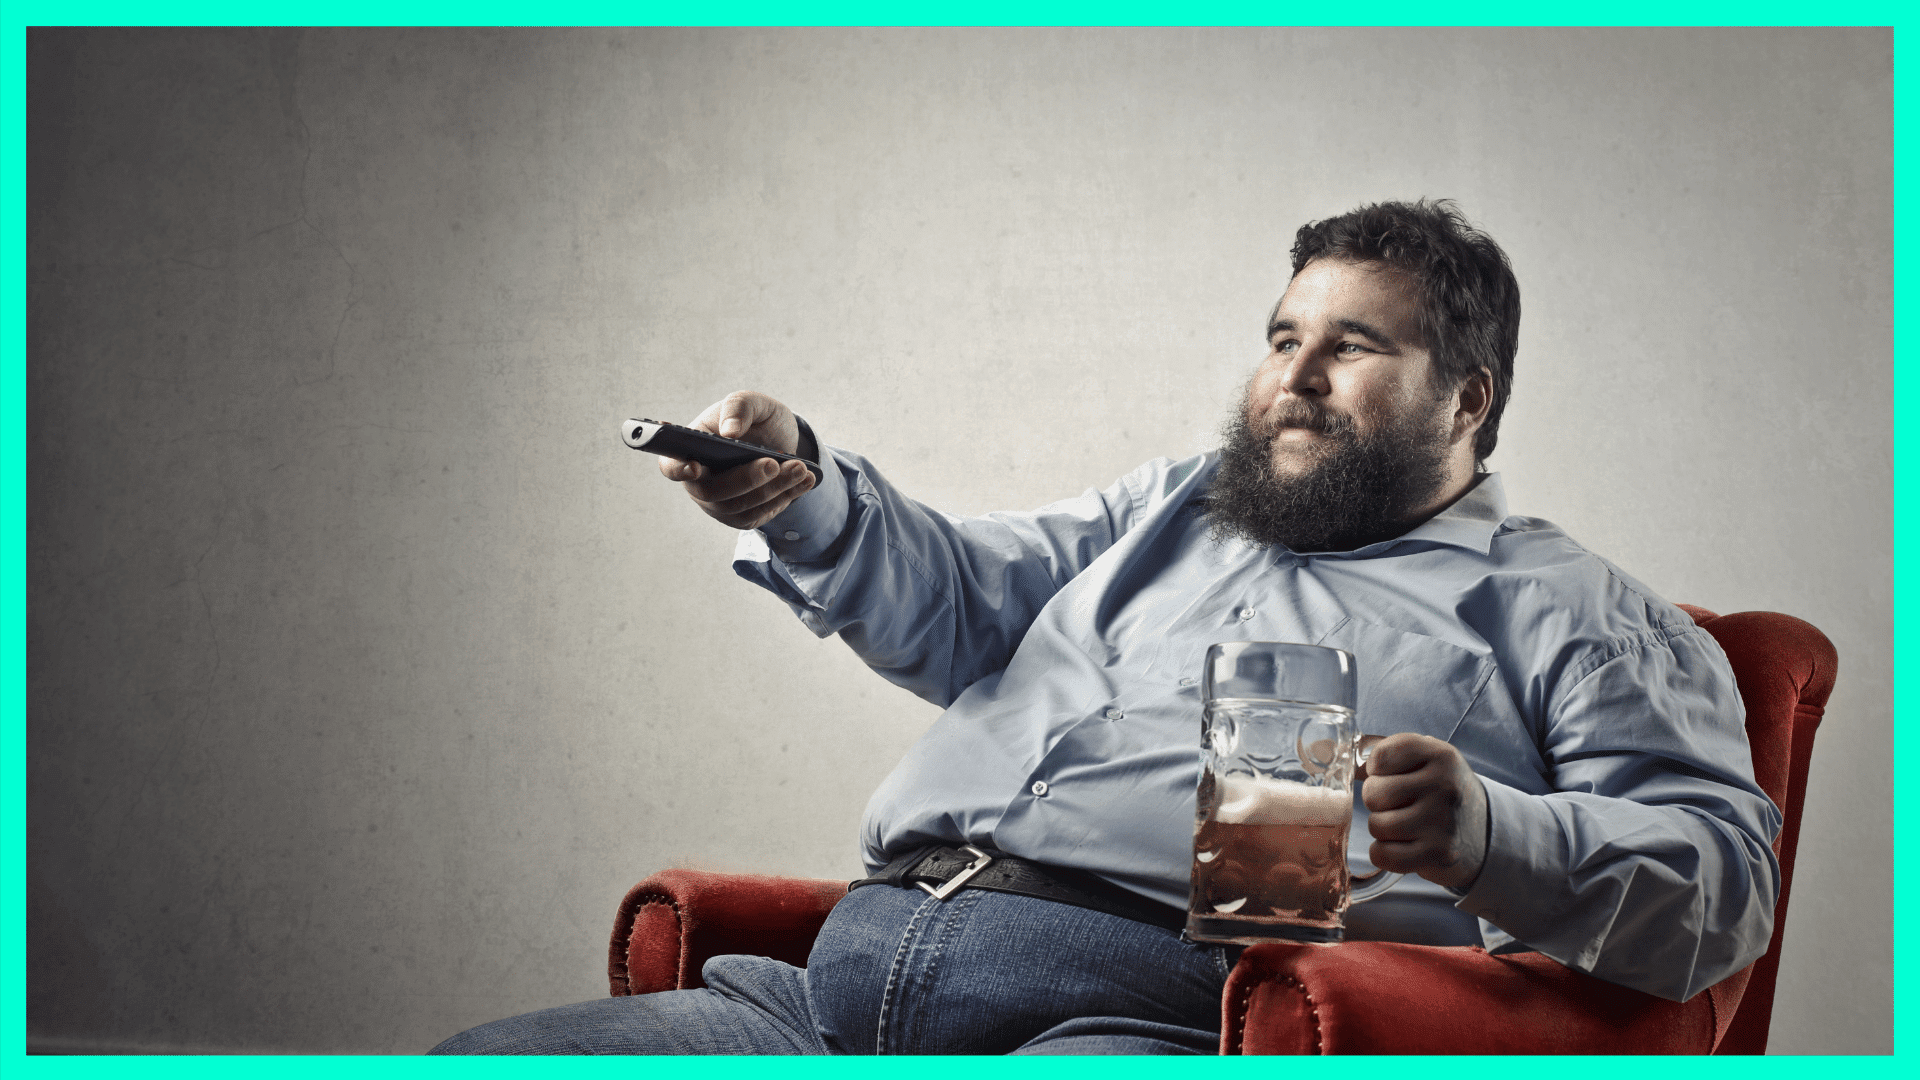 man sitting on couch with beer and tv remote